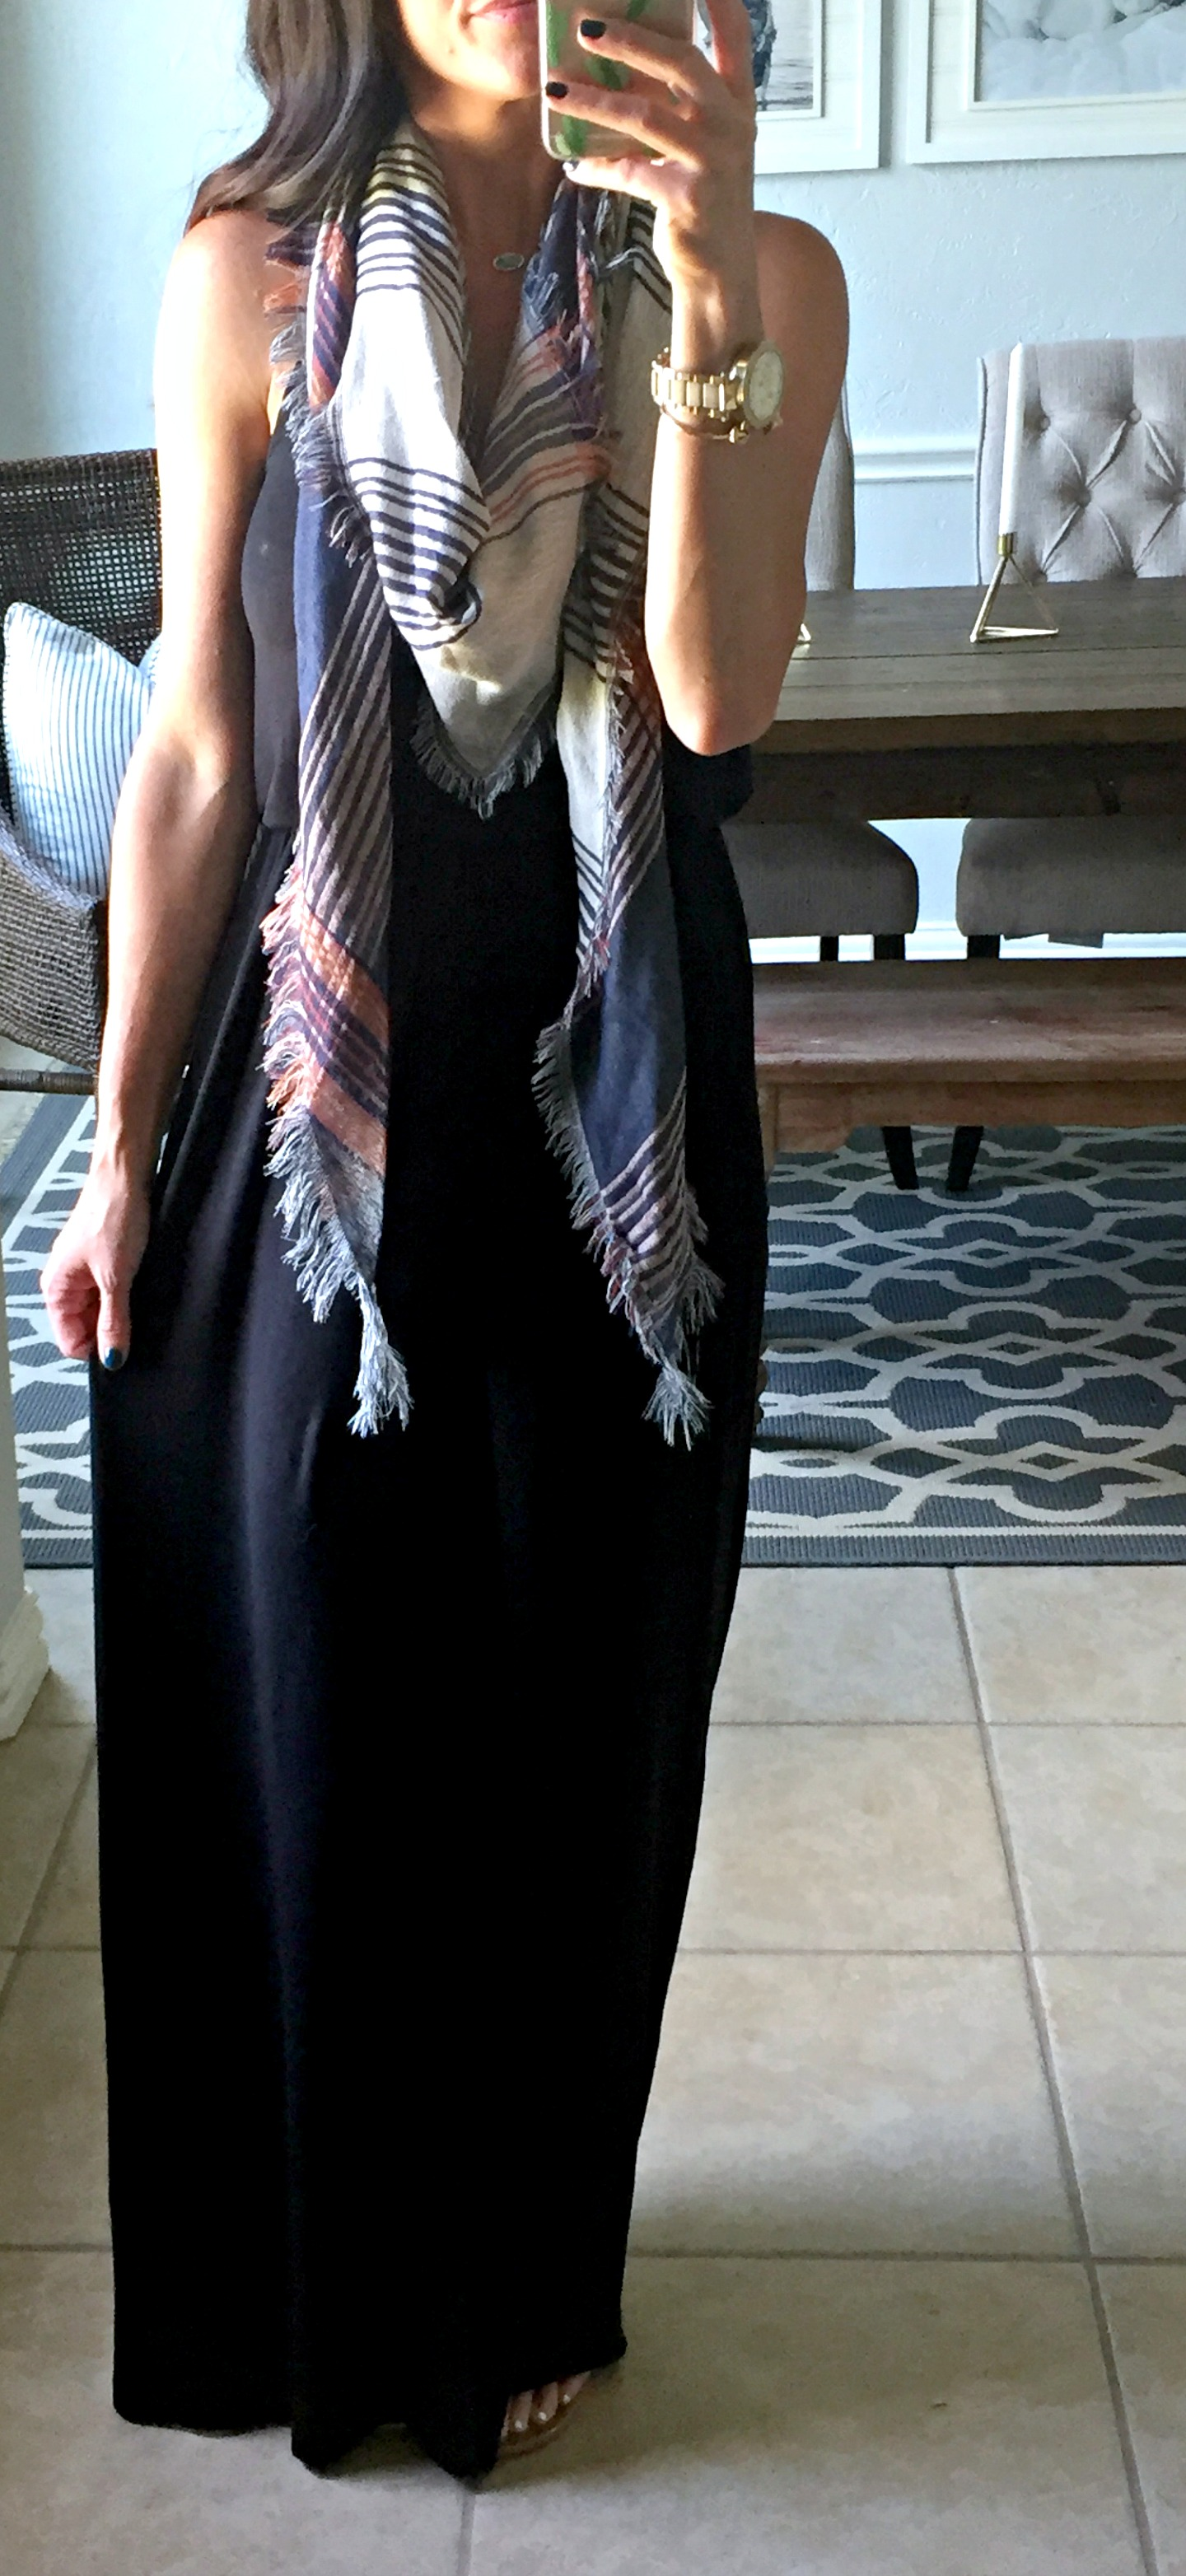 5 ways to style a black dress, maxi dress, scarf